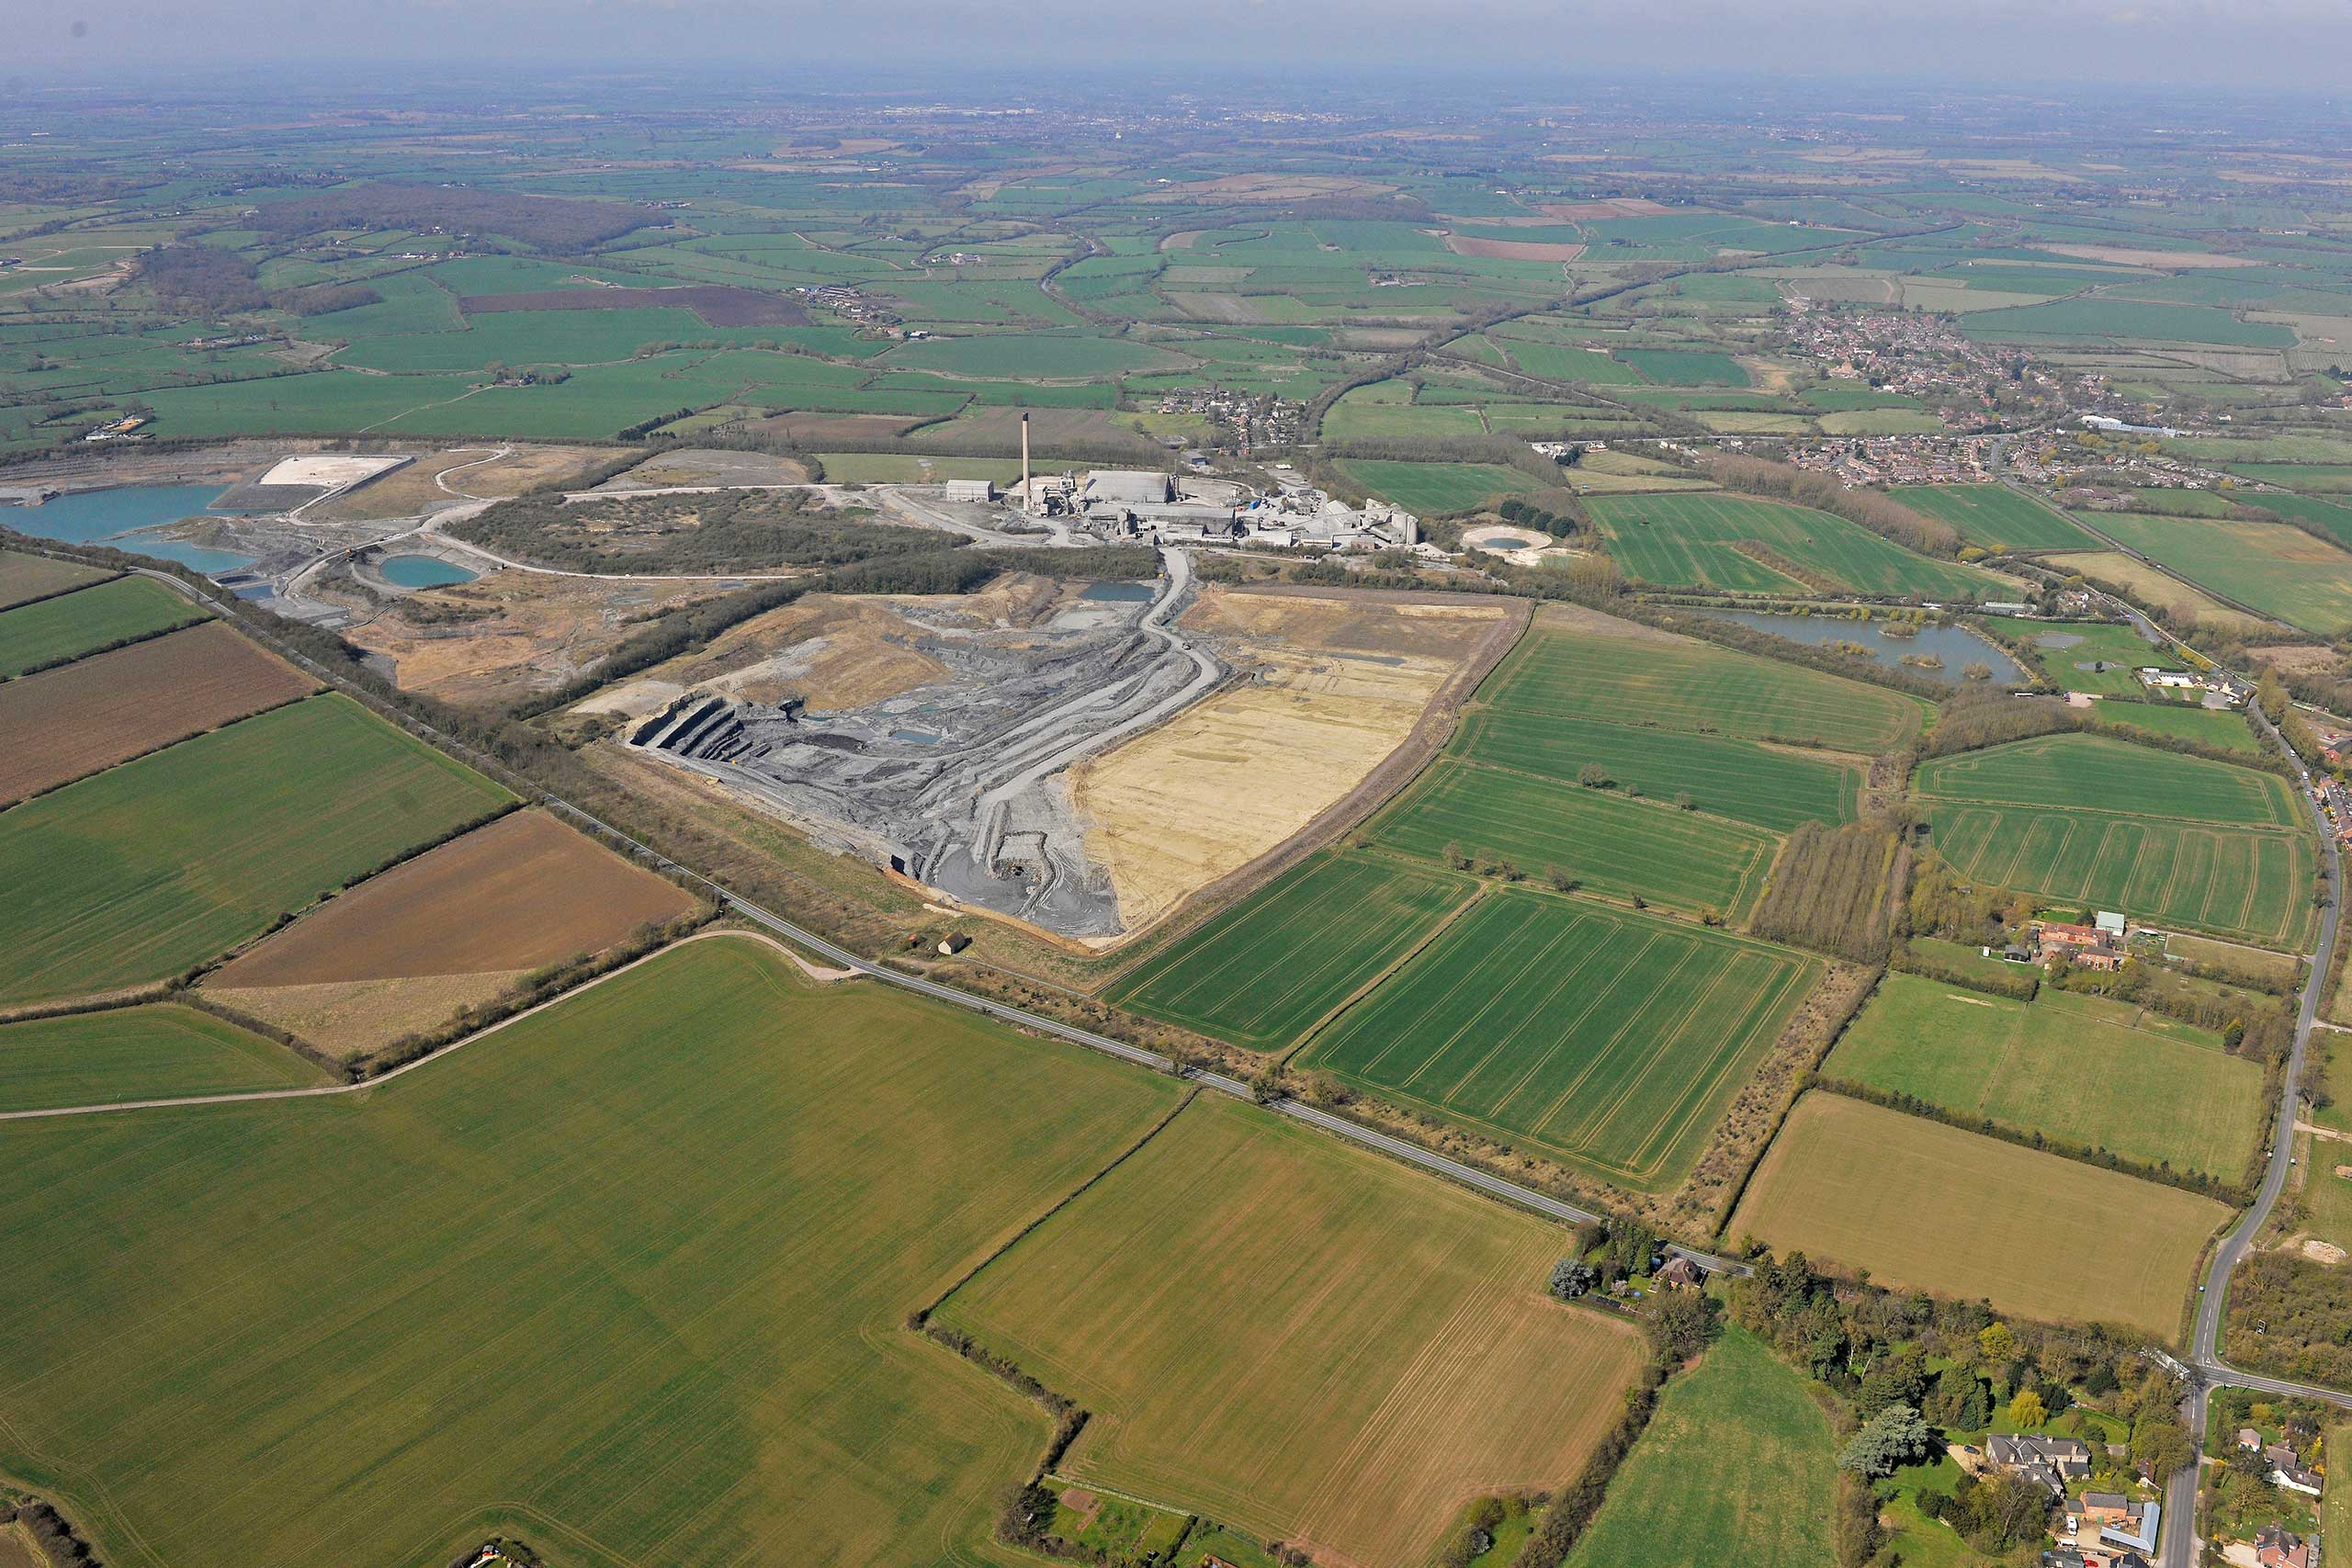 Photo. Our Southam quarry in the UK is one of 10 that is taking part in this pilot project